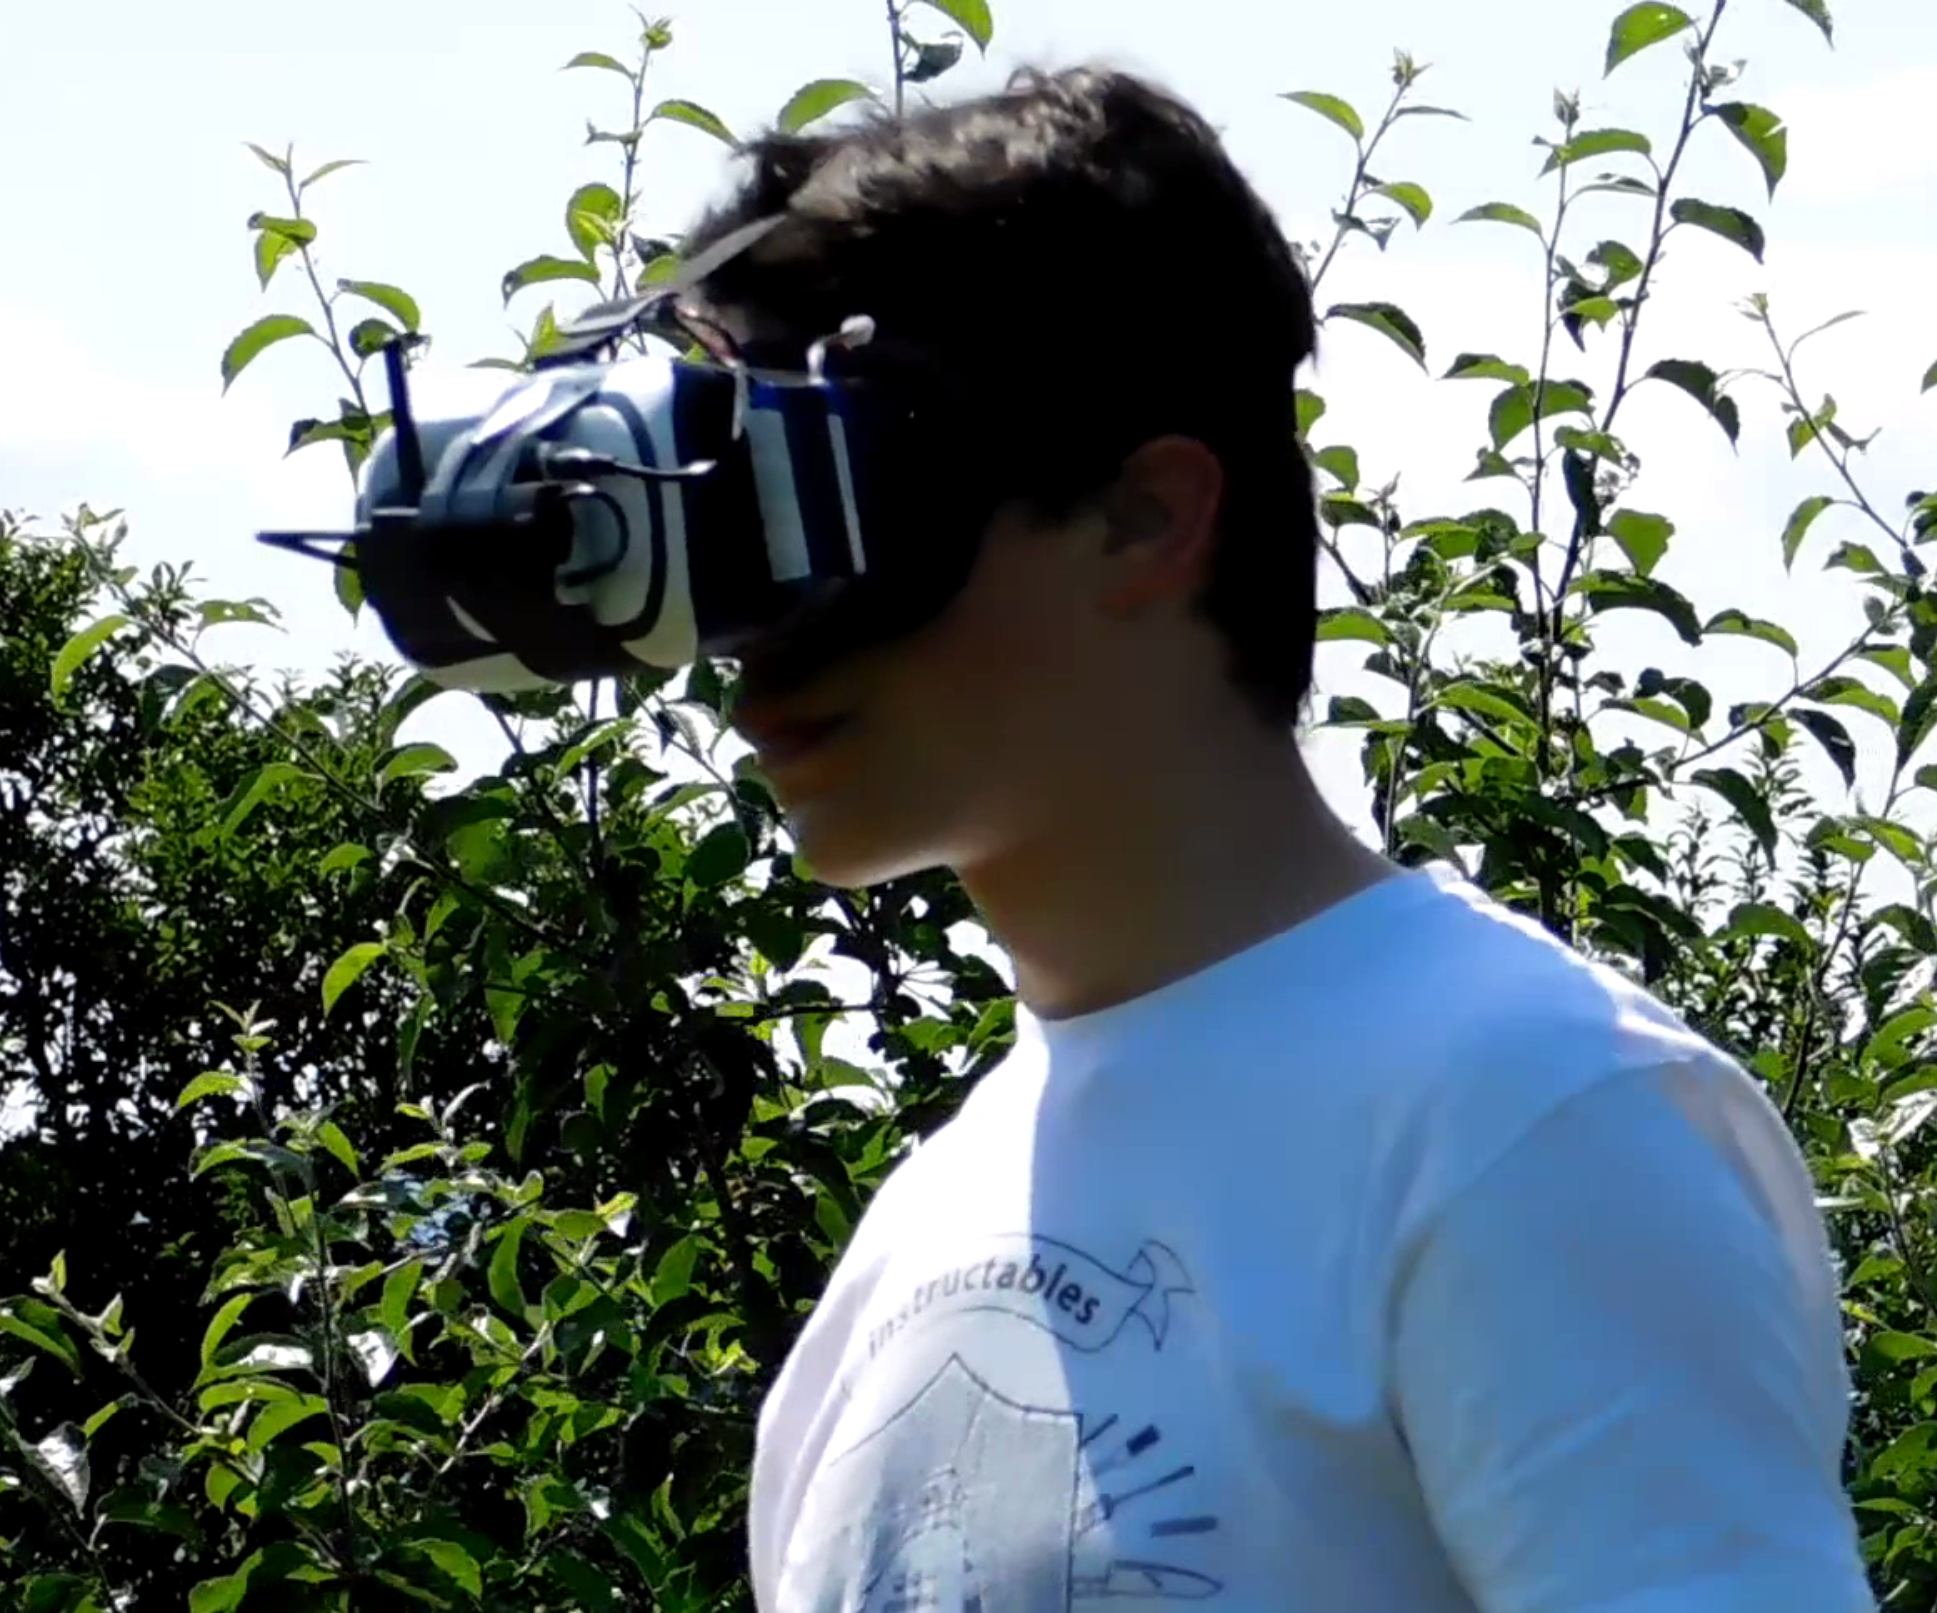 DIY Cheap VR FPV System for Drones, Planes, Cars